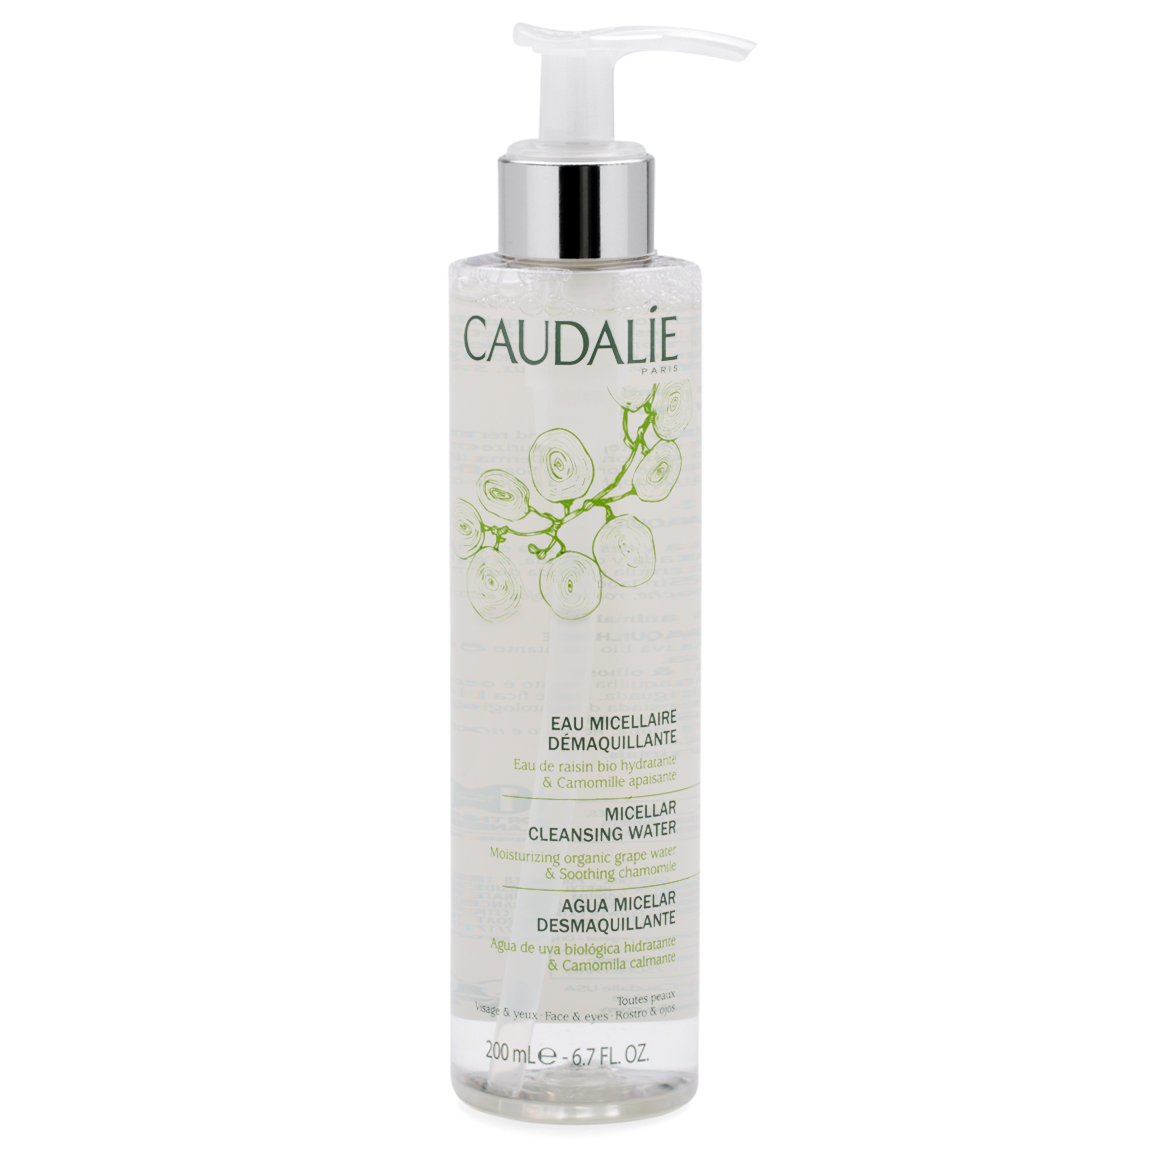 Caudalie Micellar Cleansing Water 200 ml product smear.